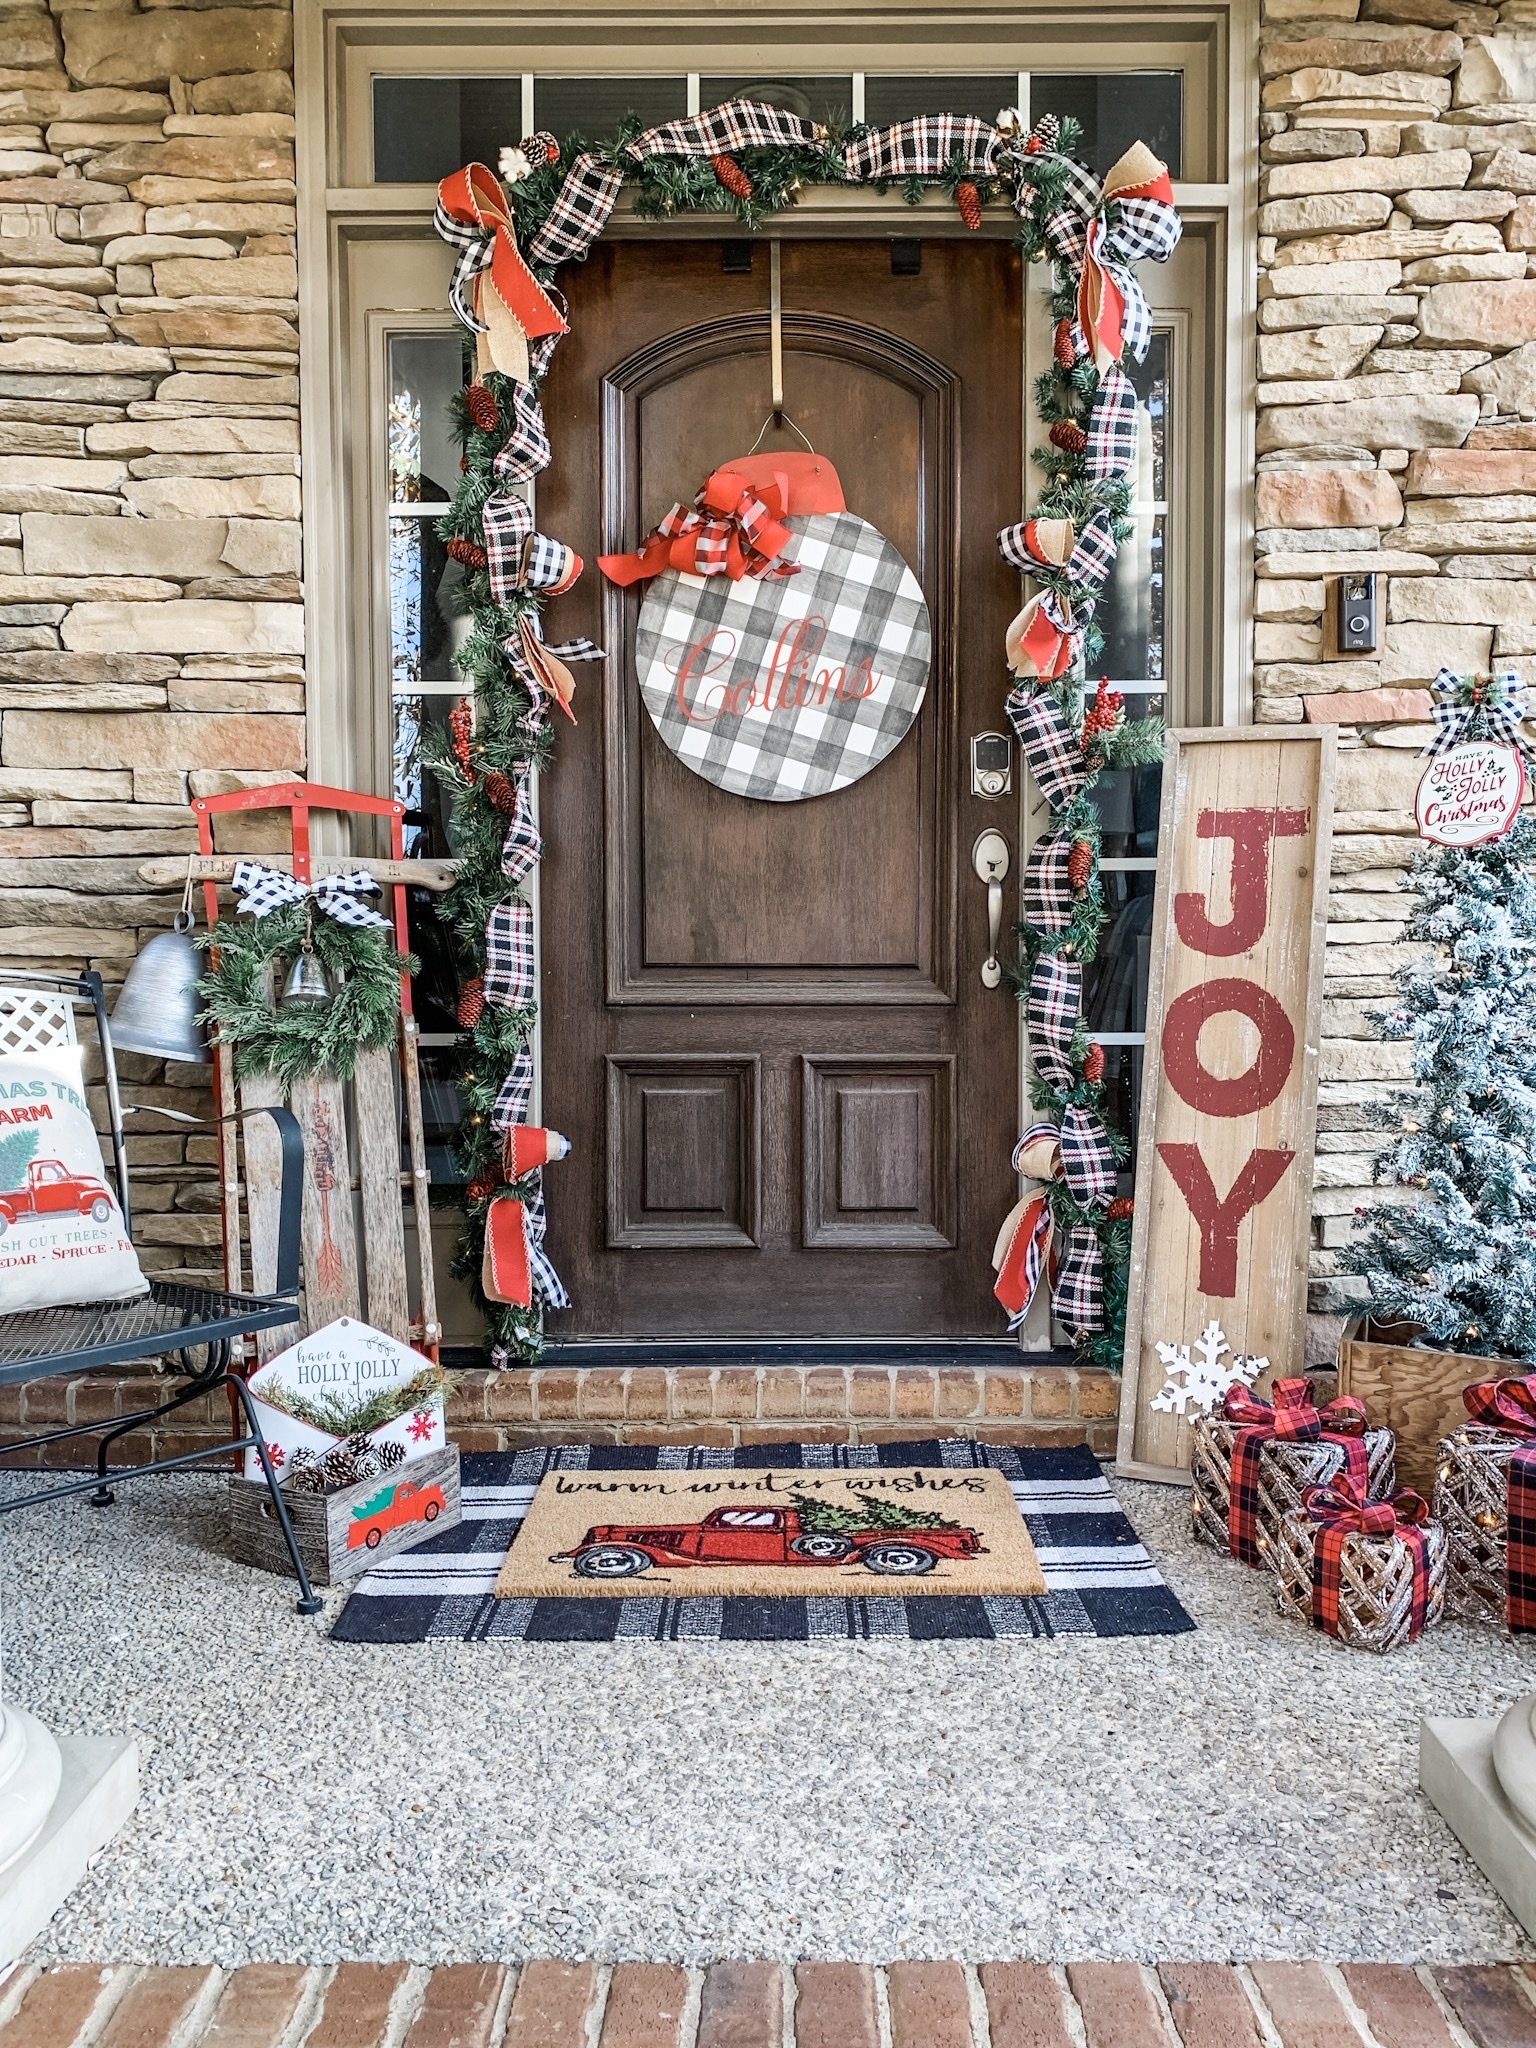 Christmas front porch decorations for a festive look!